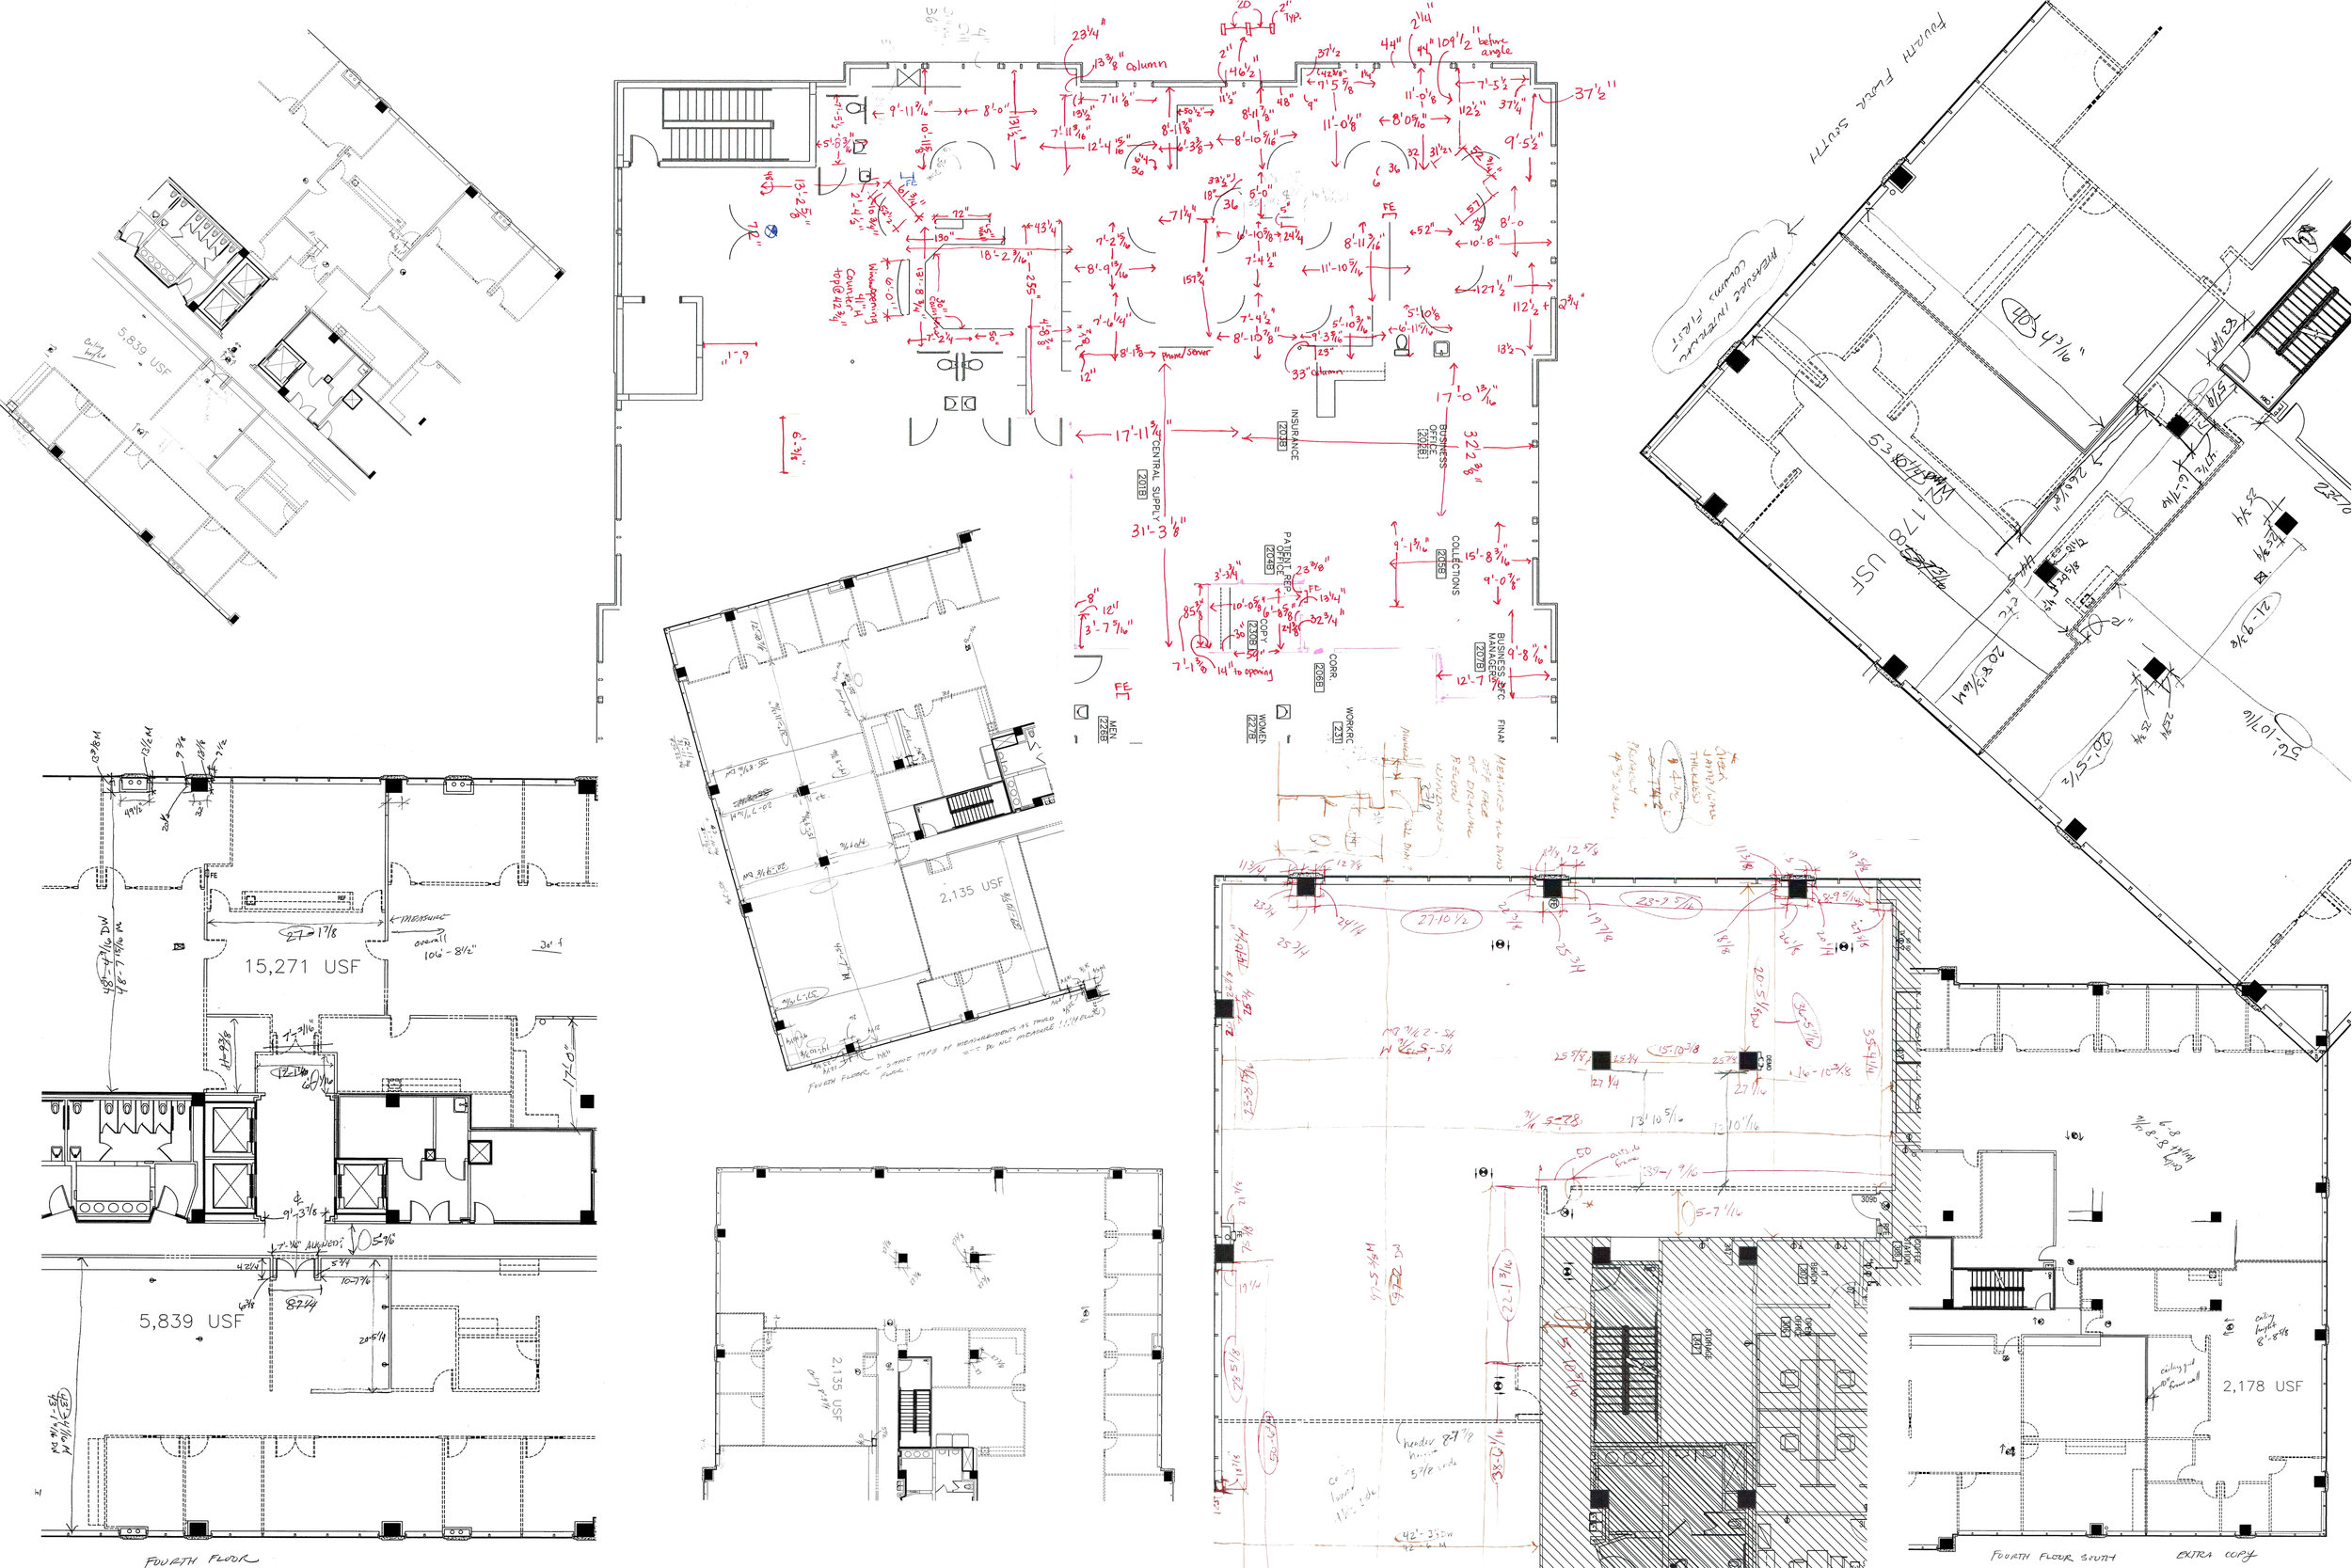 Field Measurement Documentation and Space Planning